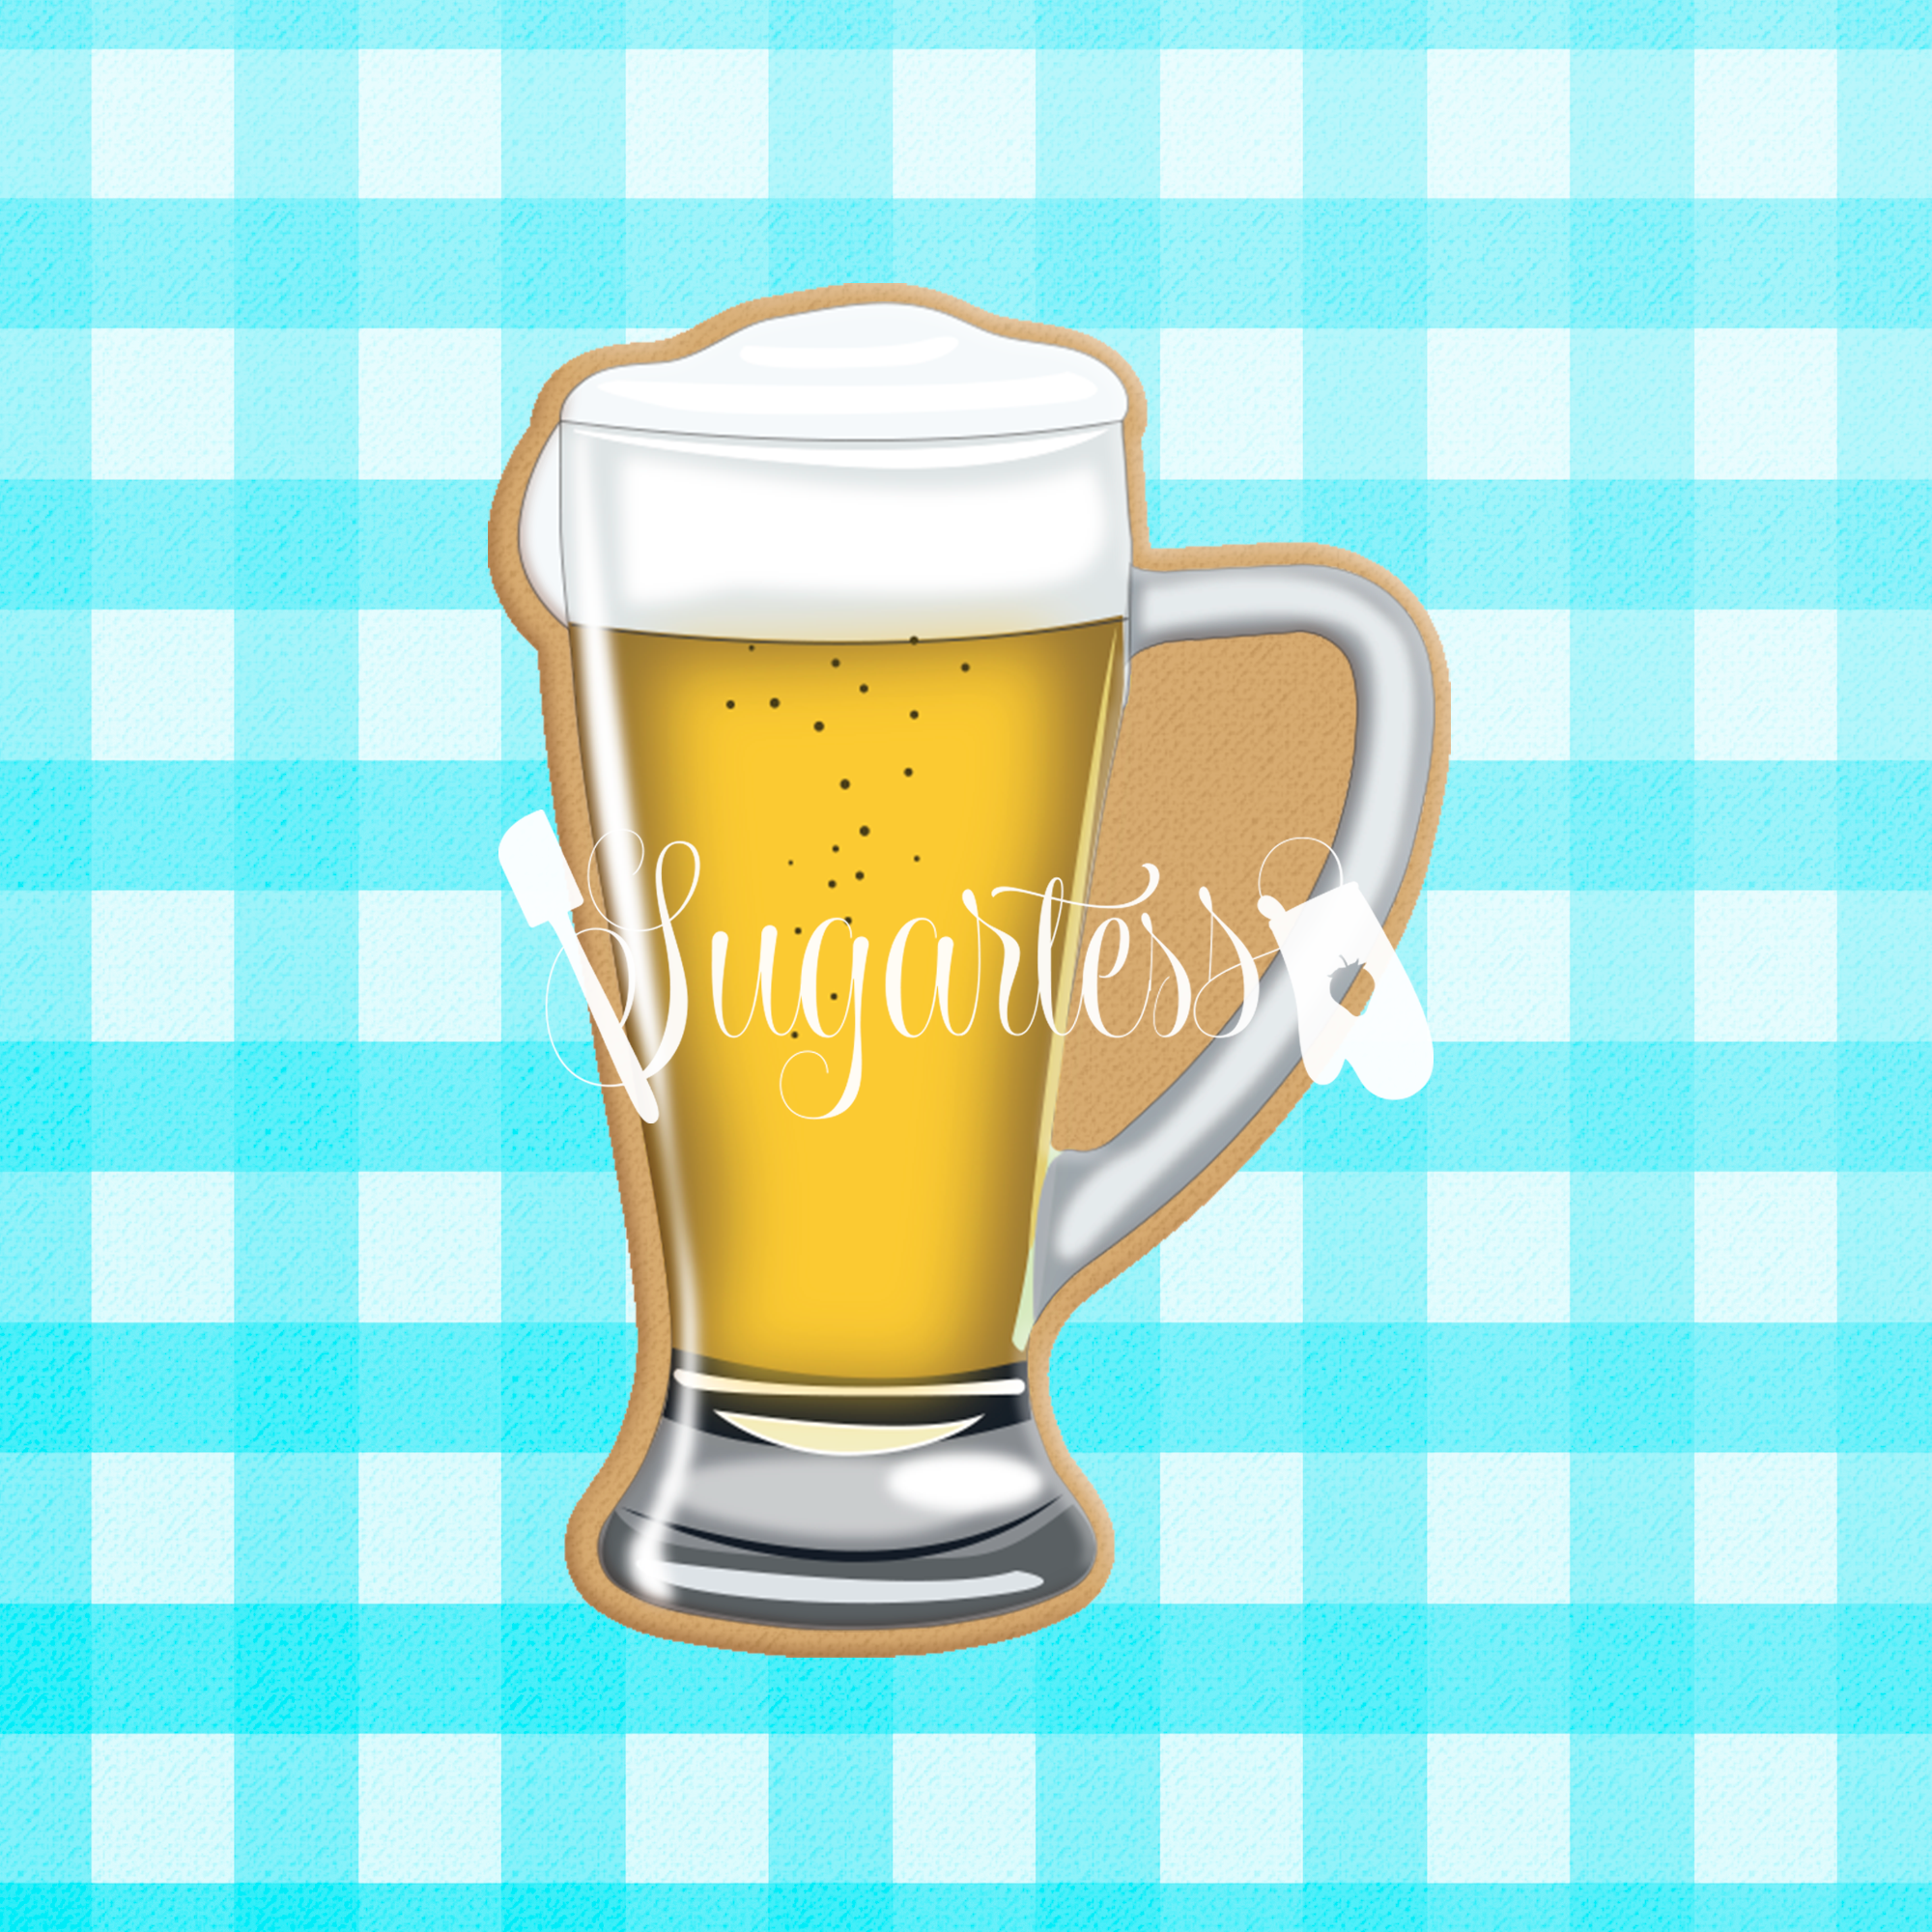 Stylish Beer Glass Mug Cookie Cutter Shopify Sugartess Cutters